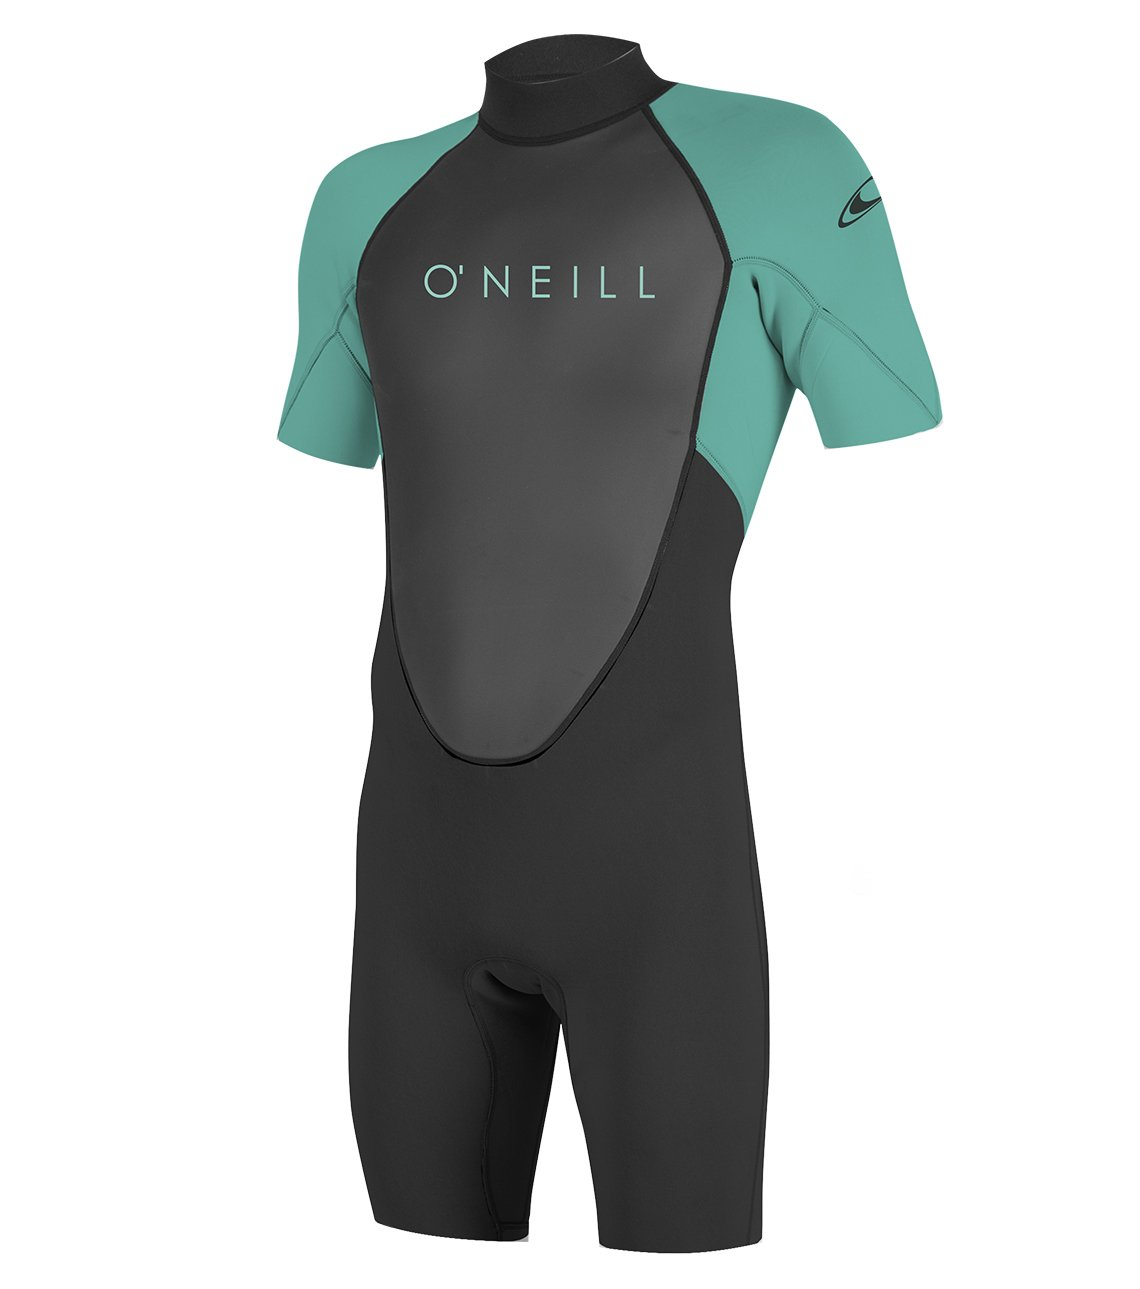 O'Neill Youth Reactor-2 2mm Back Zip Short Sleeve Spring Wetsuit, Black/Aqua, 4 by O'Neill Wetsuits (Image #1)